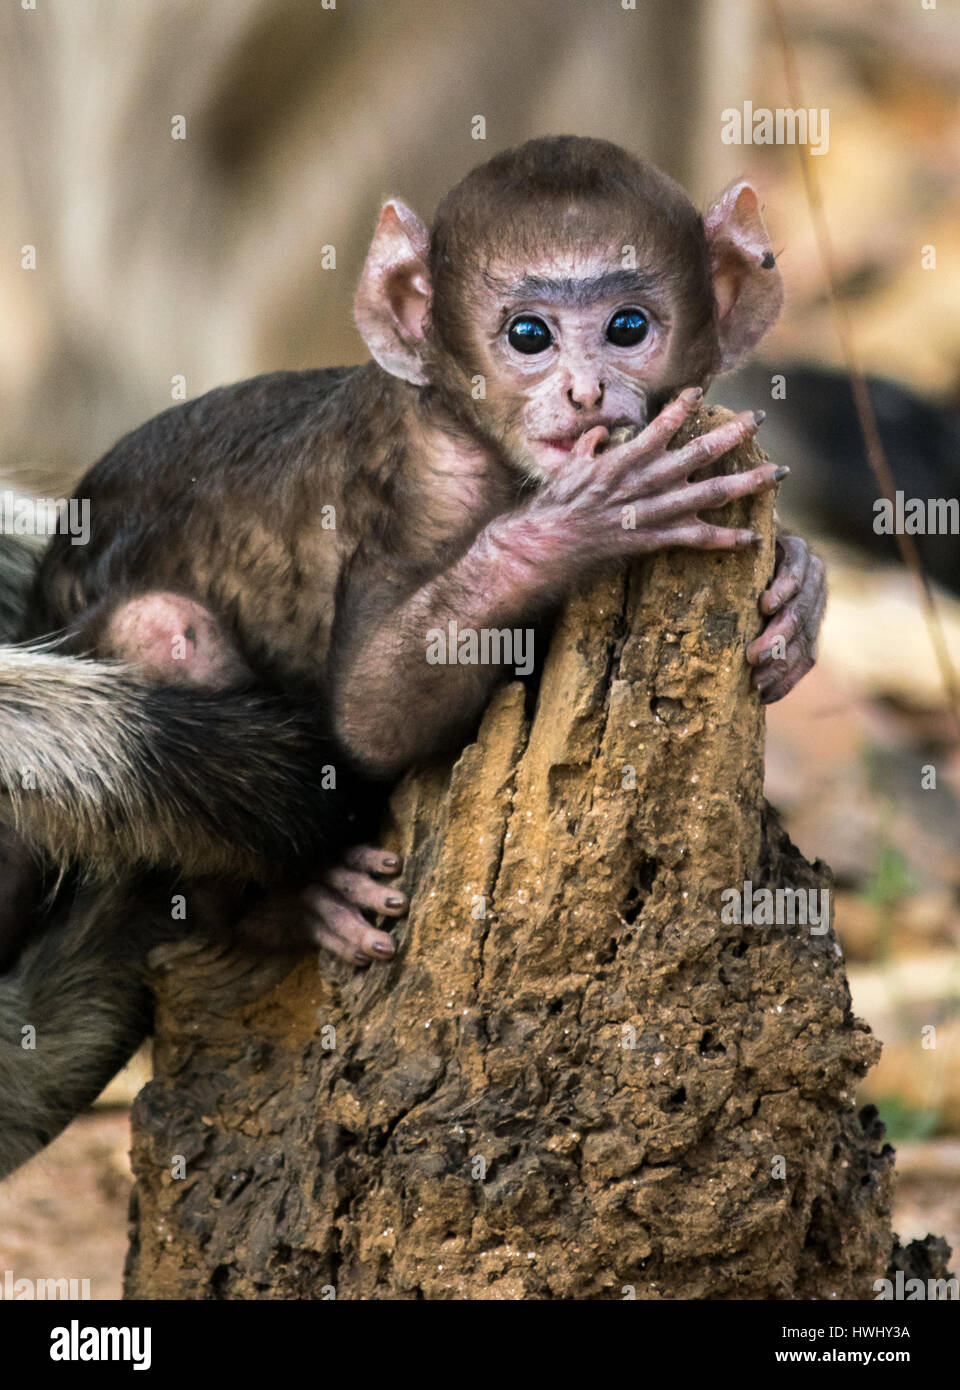 Adorable Baby Monkey - Stock Image